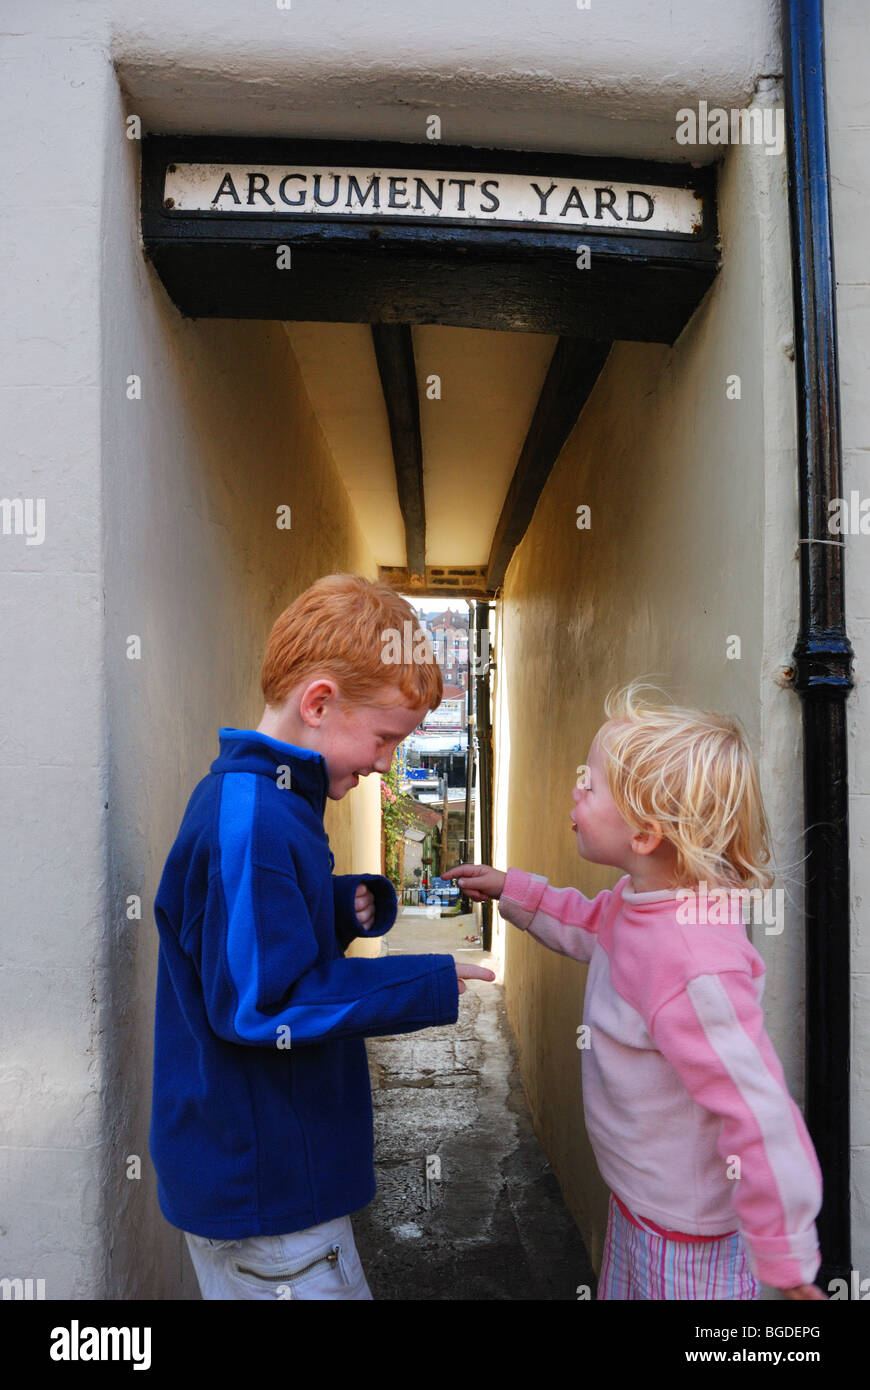 Children having an argument in Arguments Yard, a street in Whitby, England - Stock Image